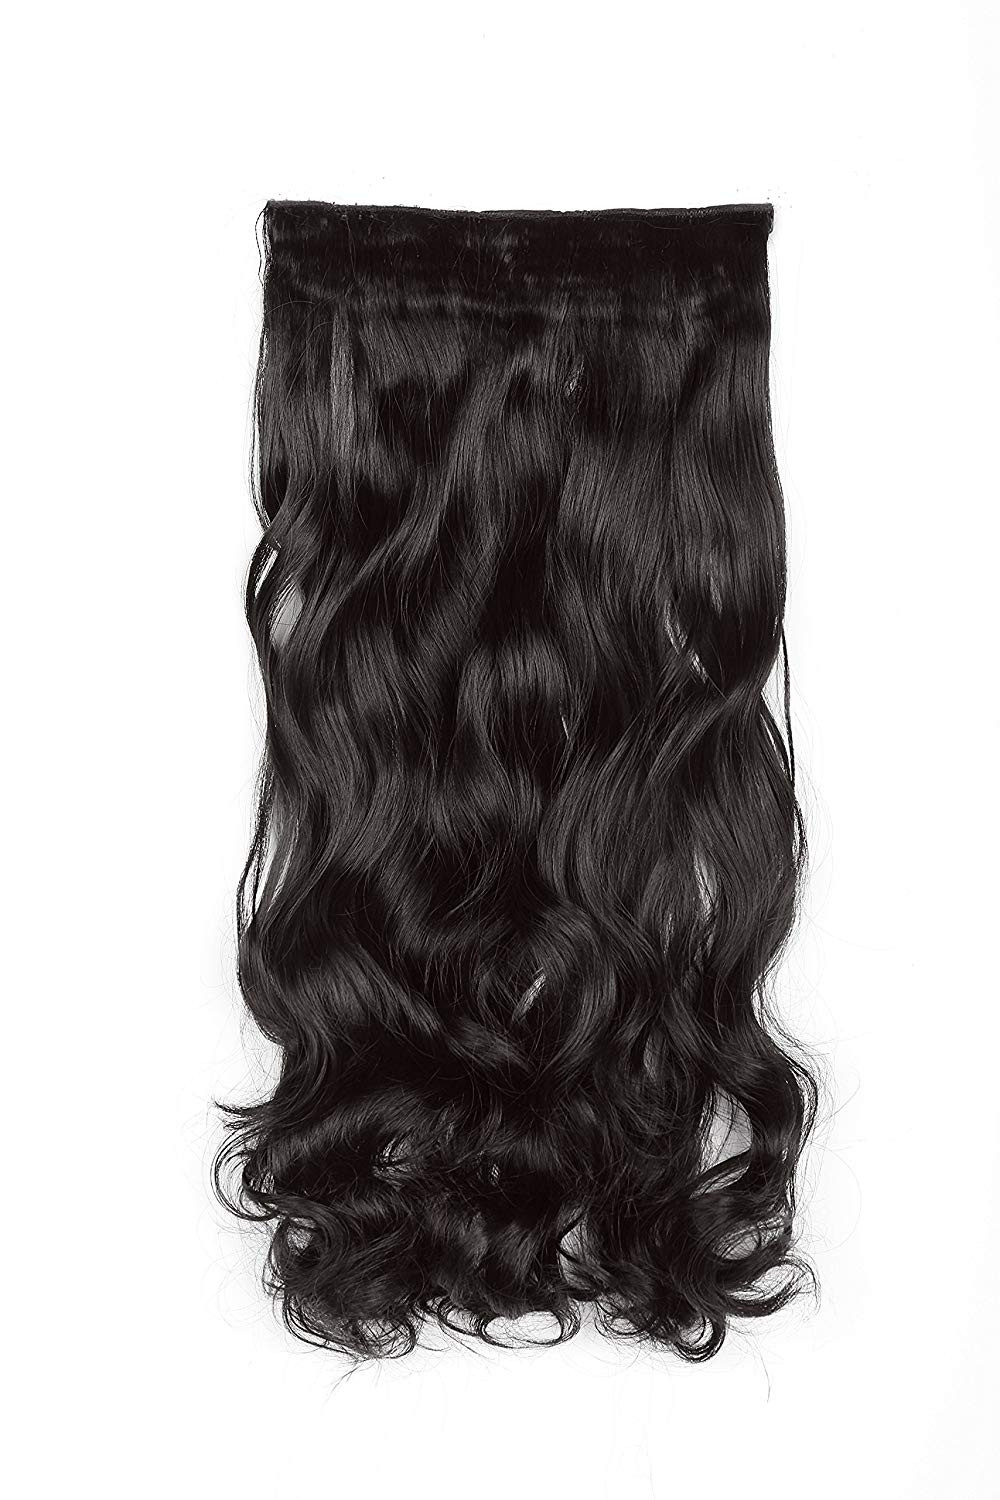 """SWACC 20"""" Women 3/4 Full Head Instant One Piece Curly Body Wave Heat Resistance Synthetic Clip in Hair Extension (Dark Brown-4#)"""